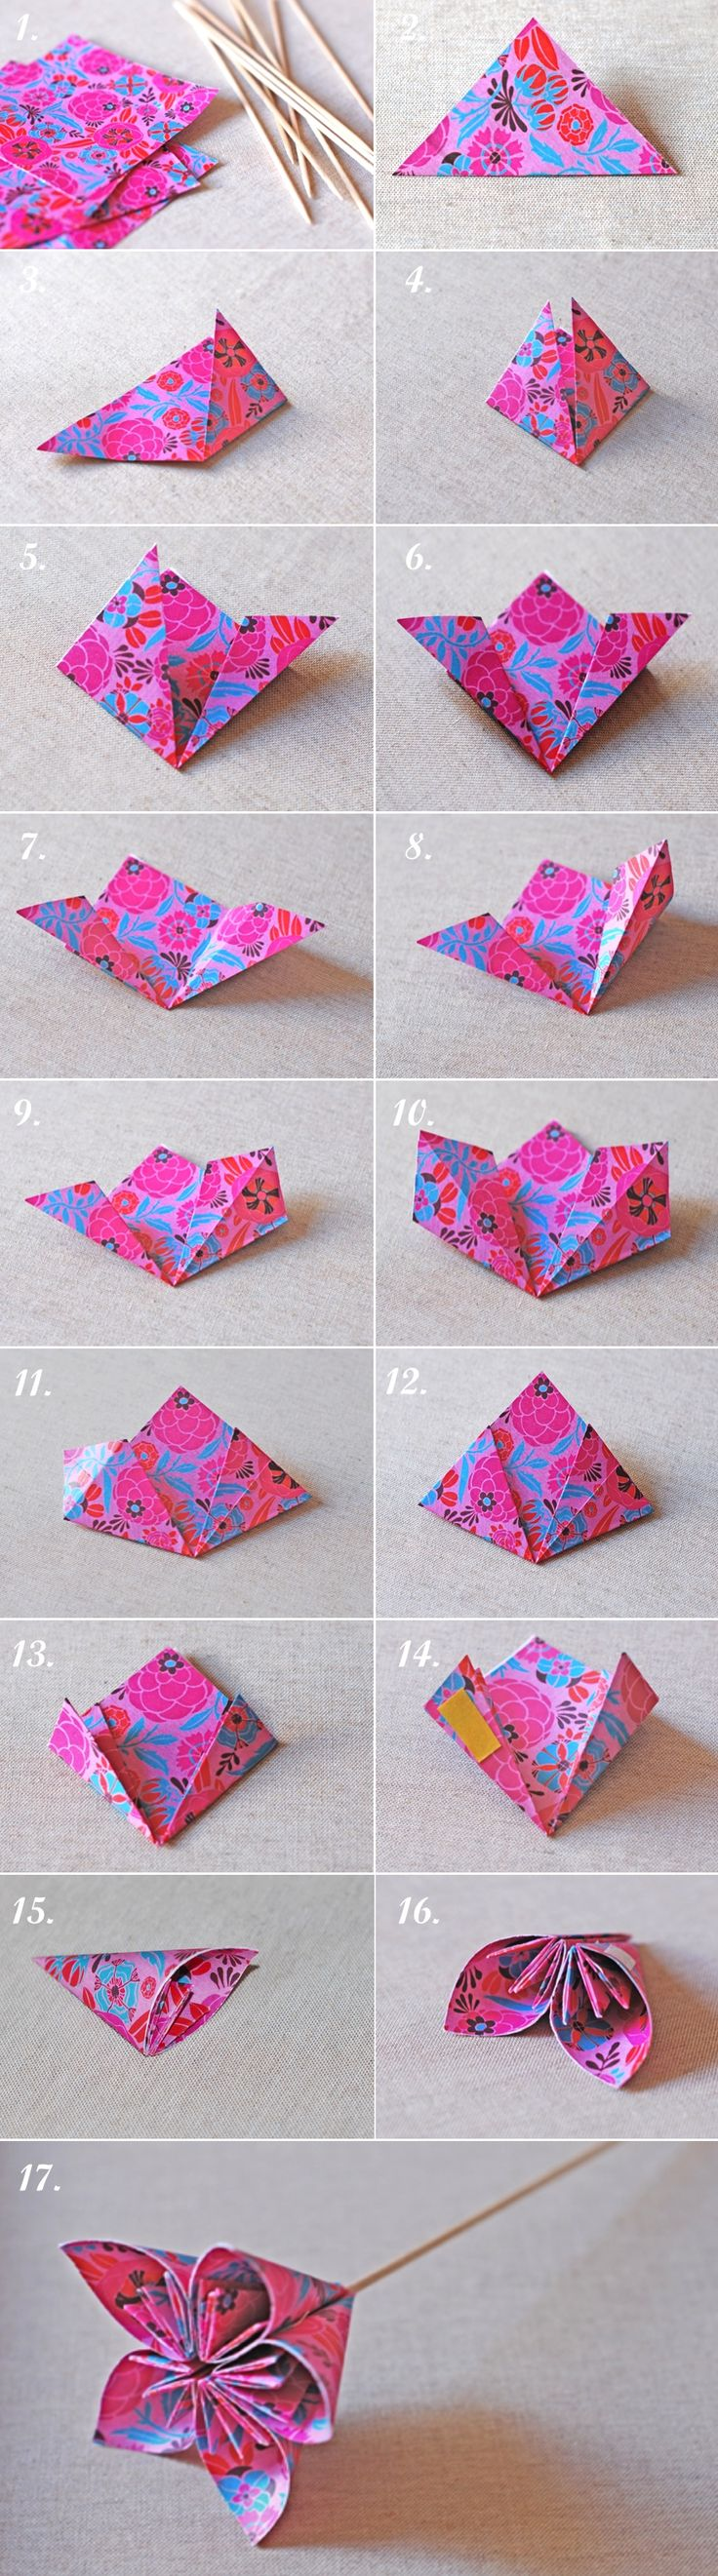 a-kiss-of-colour-diy-flores-de-papel-paper-flowers-origami-kusudama-collage-def-def